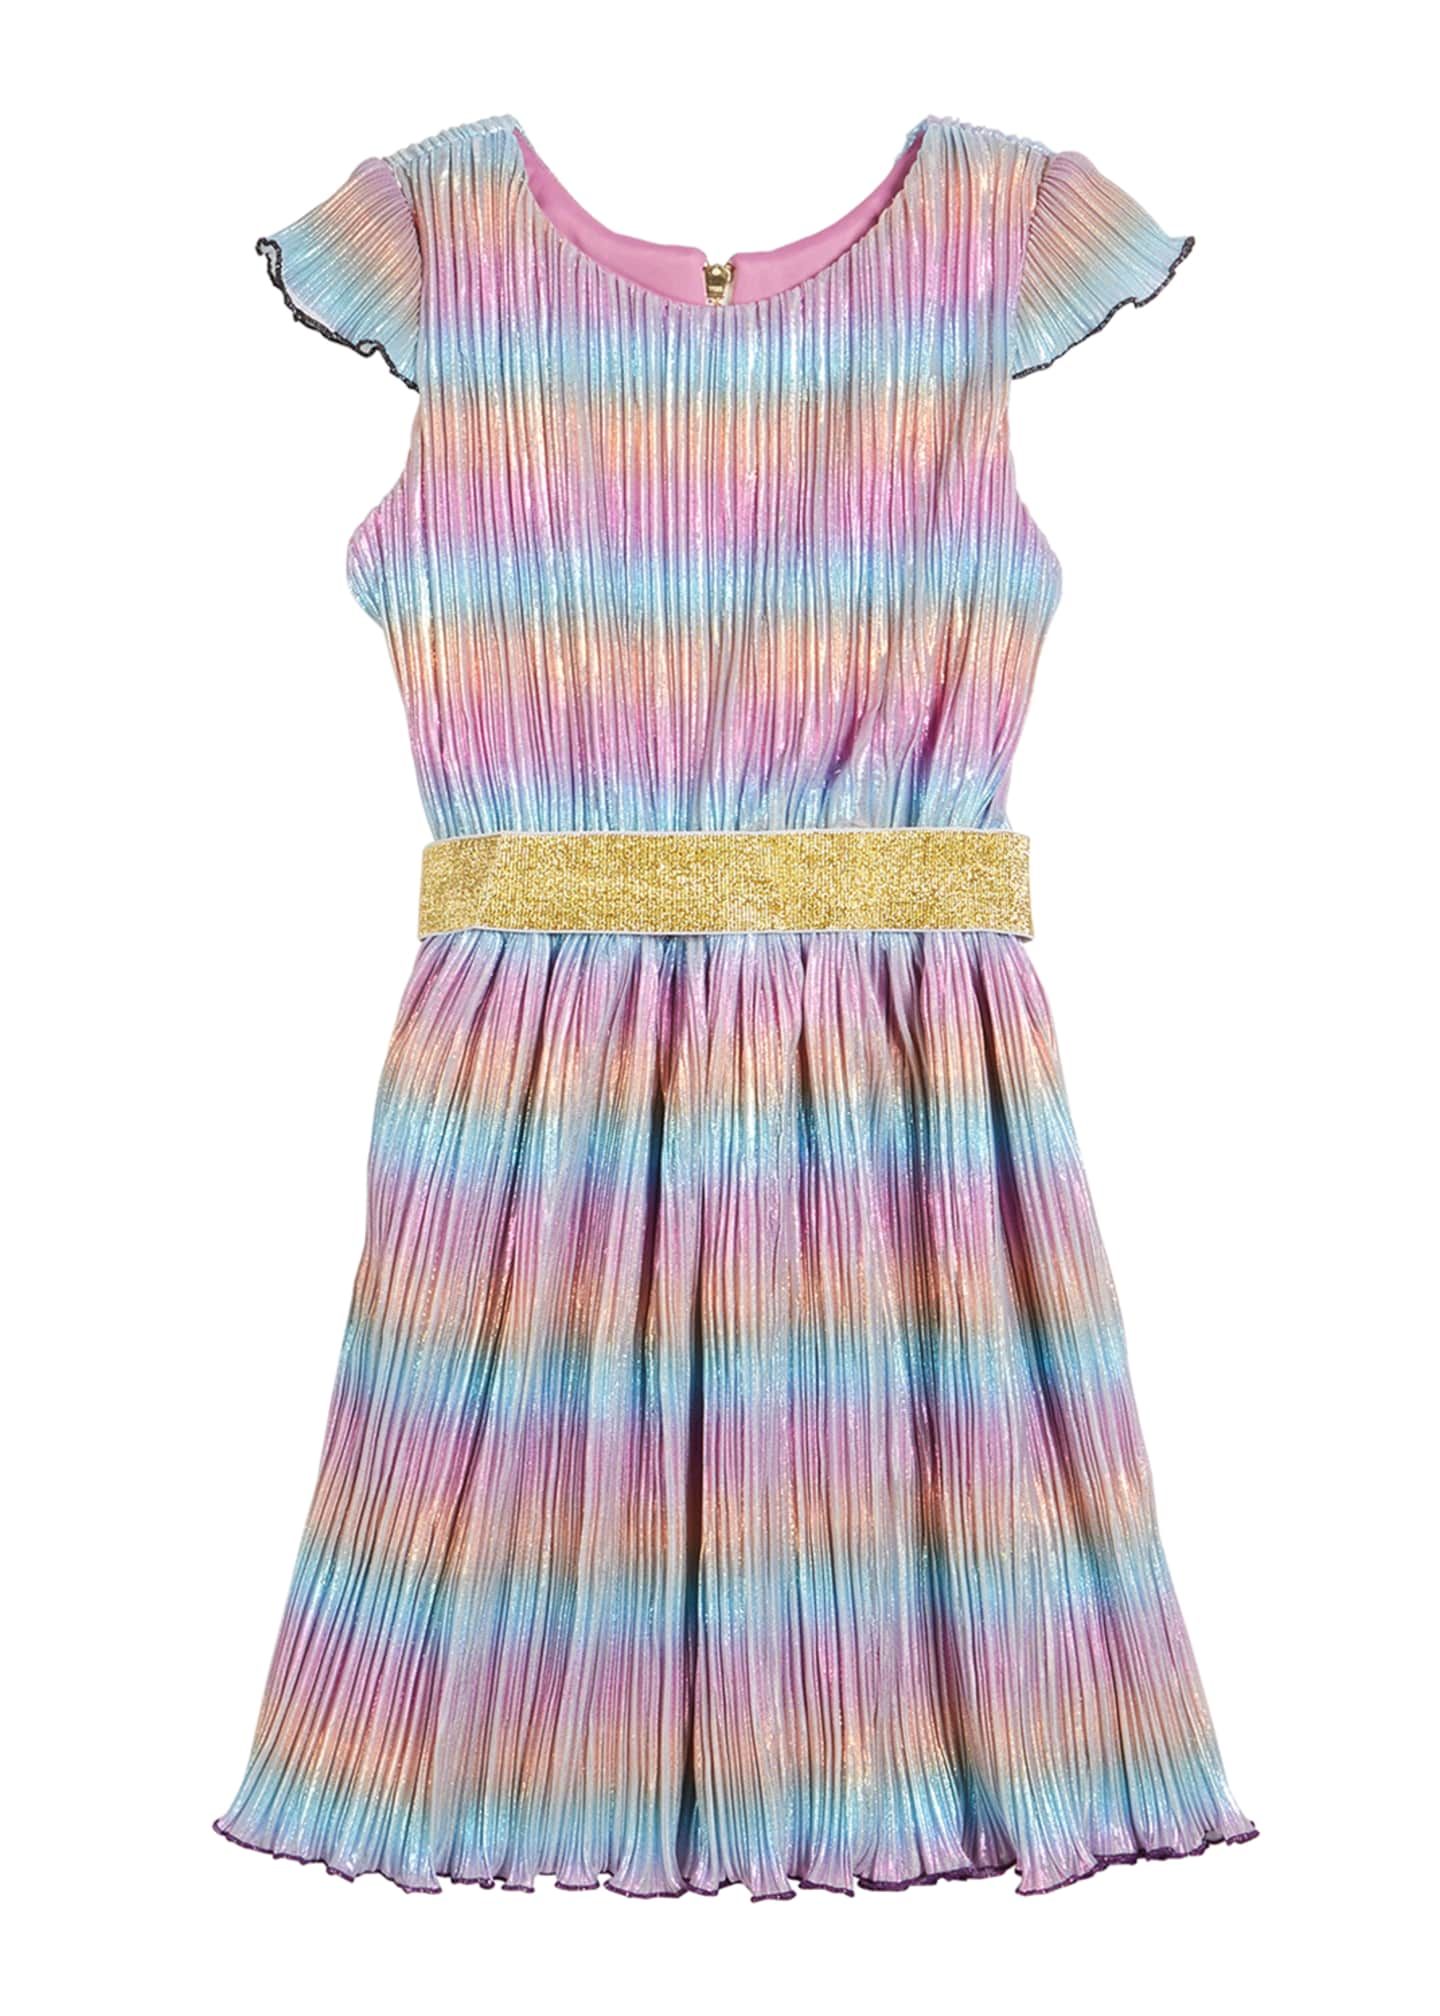 Zoe Girl's Lia Rainbow Metallic Micro Pleated Swing